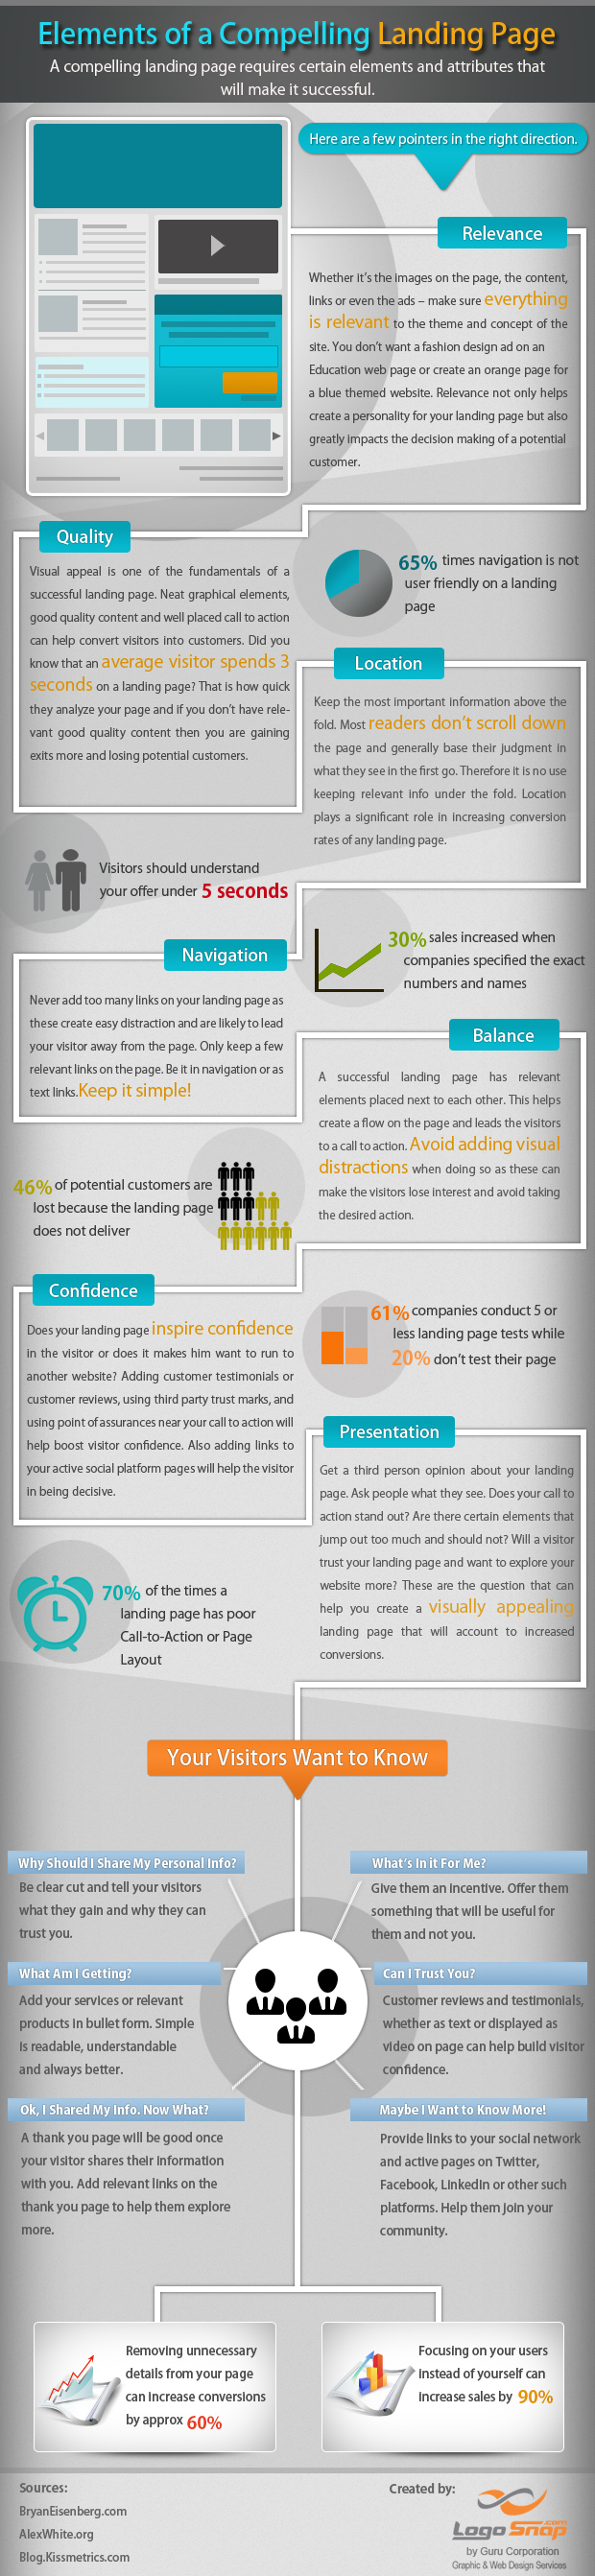 features-of-a-good-landing-page_506032b8e9acd